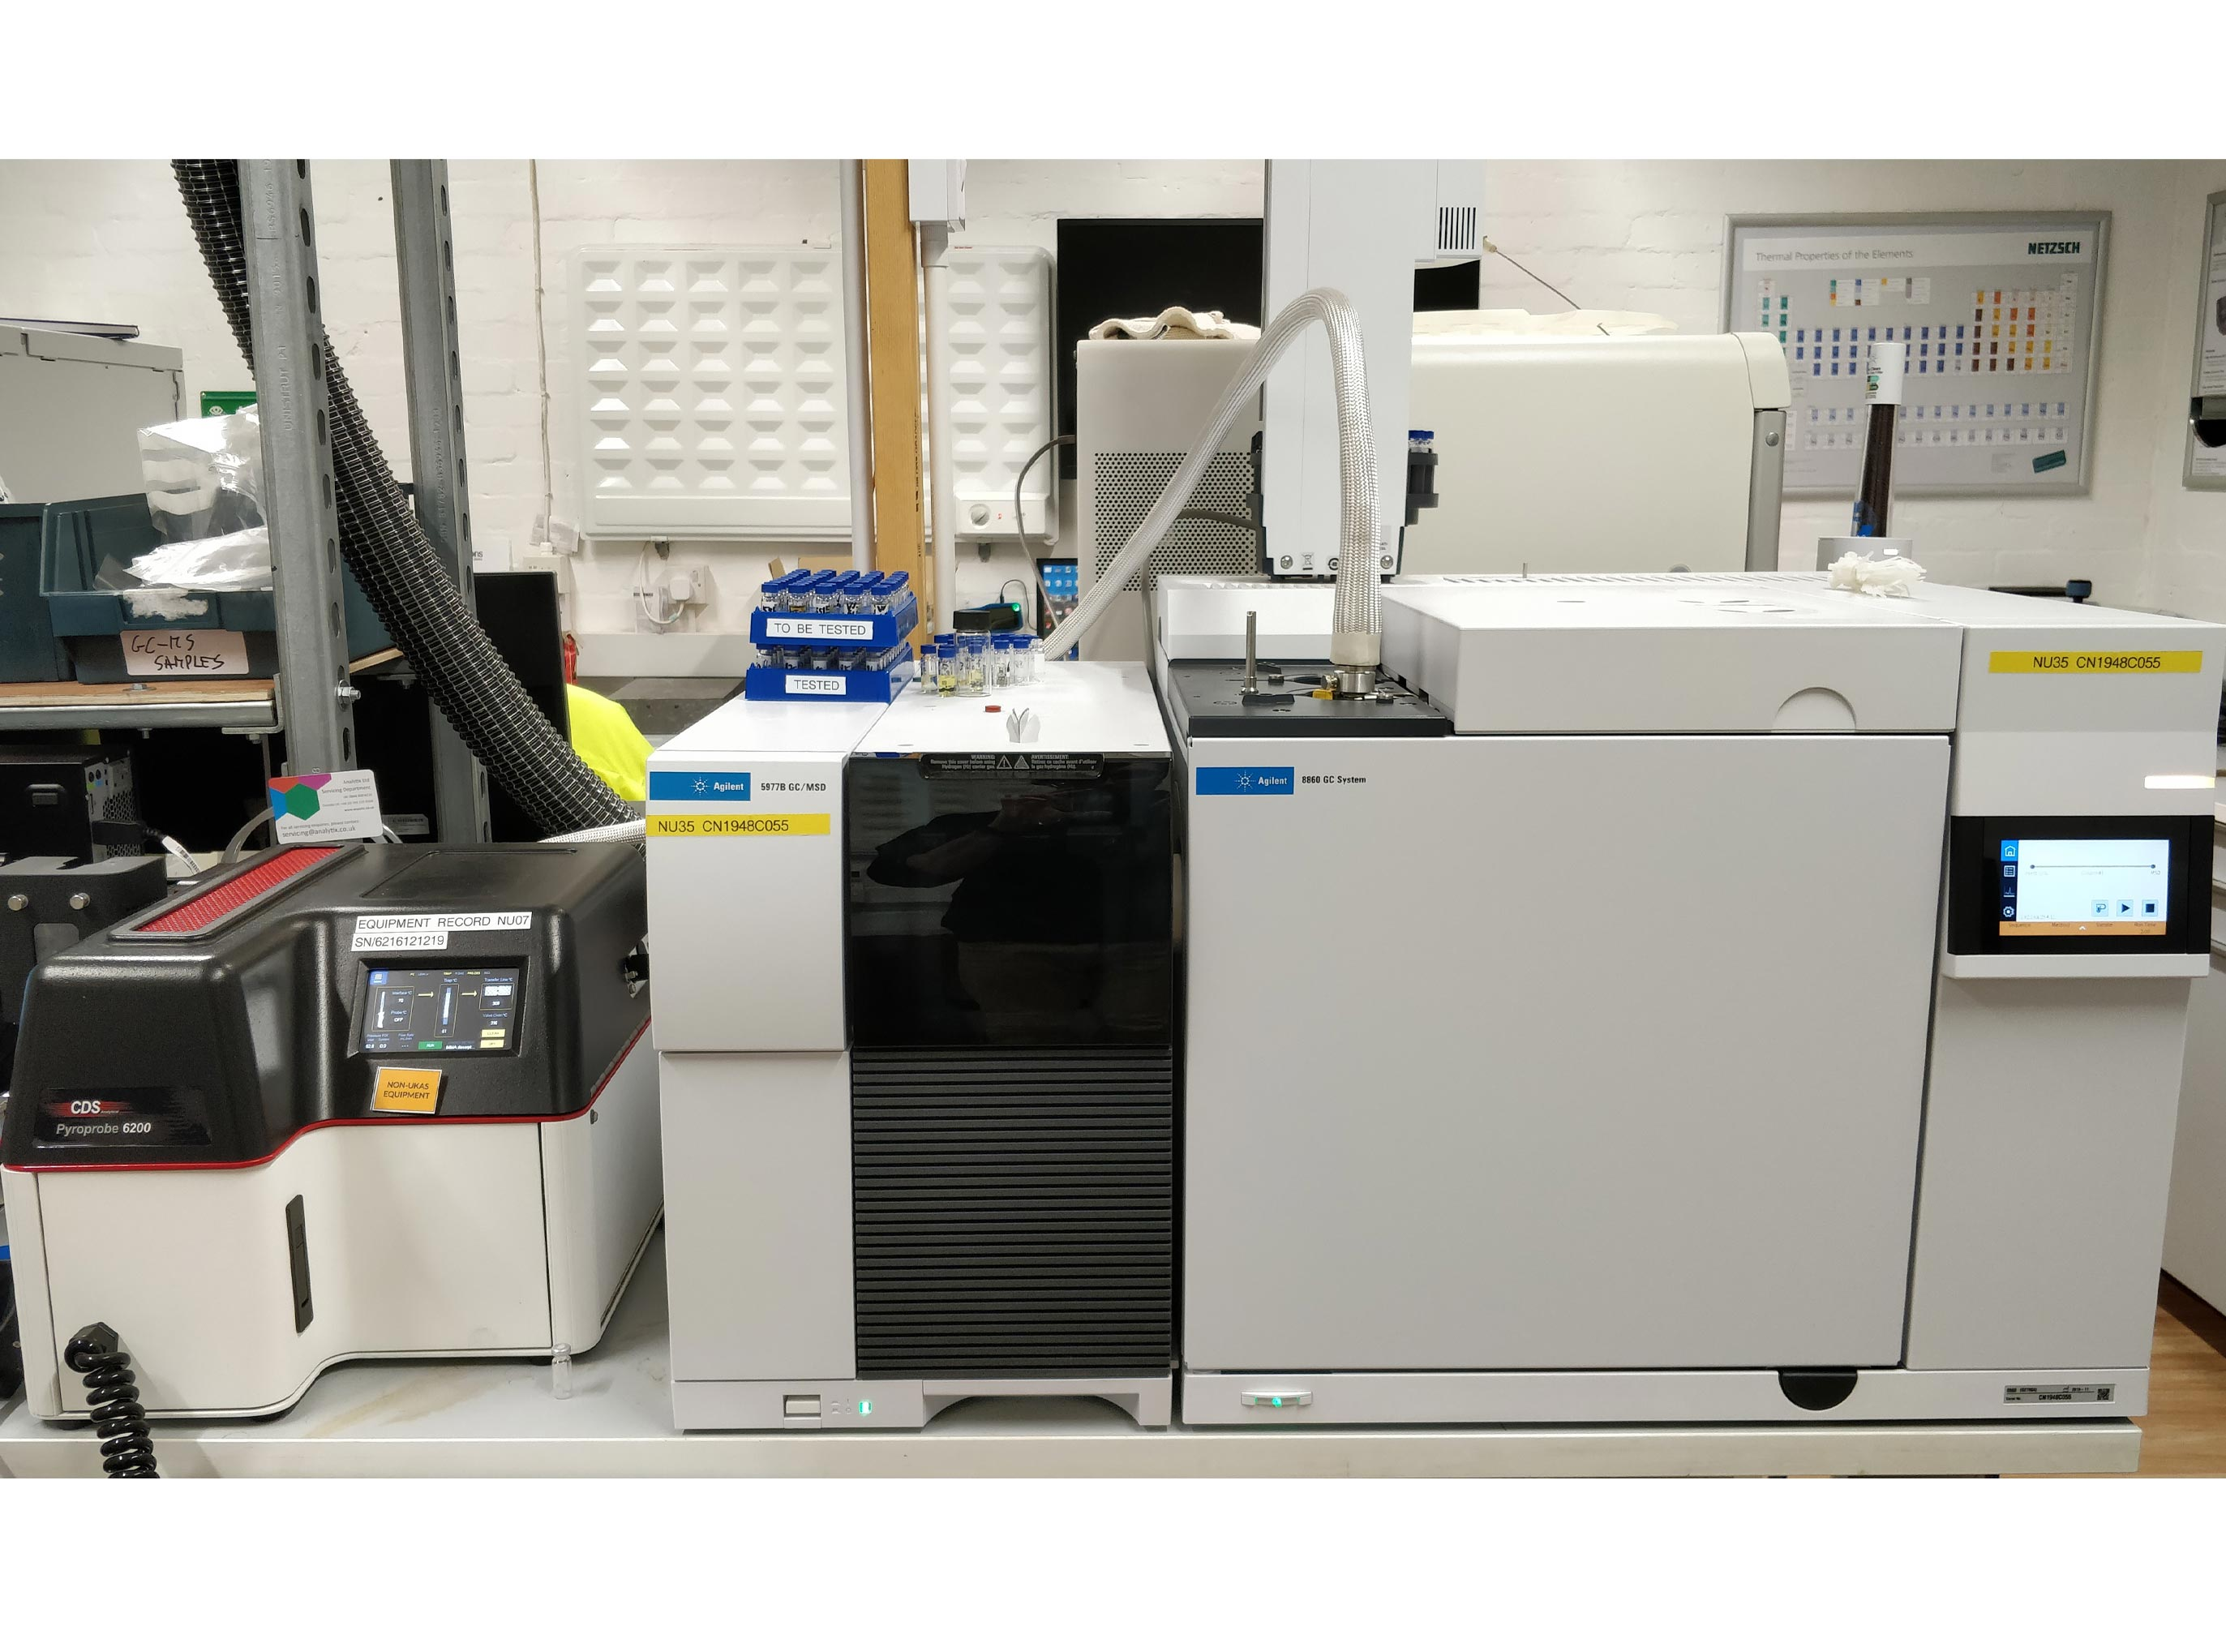 GCMS: Gas Chromatography/Mass Spectrometry